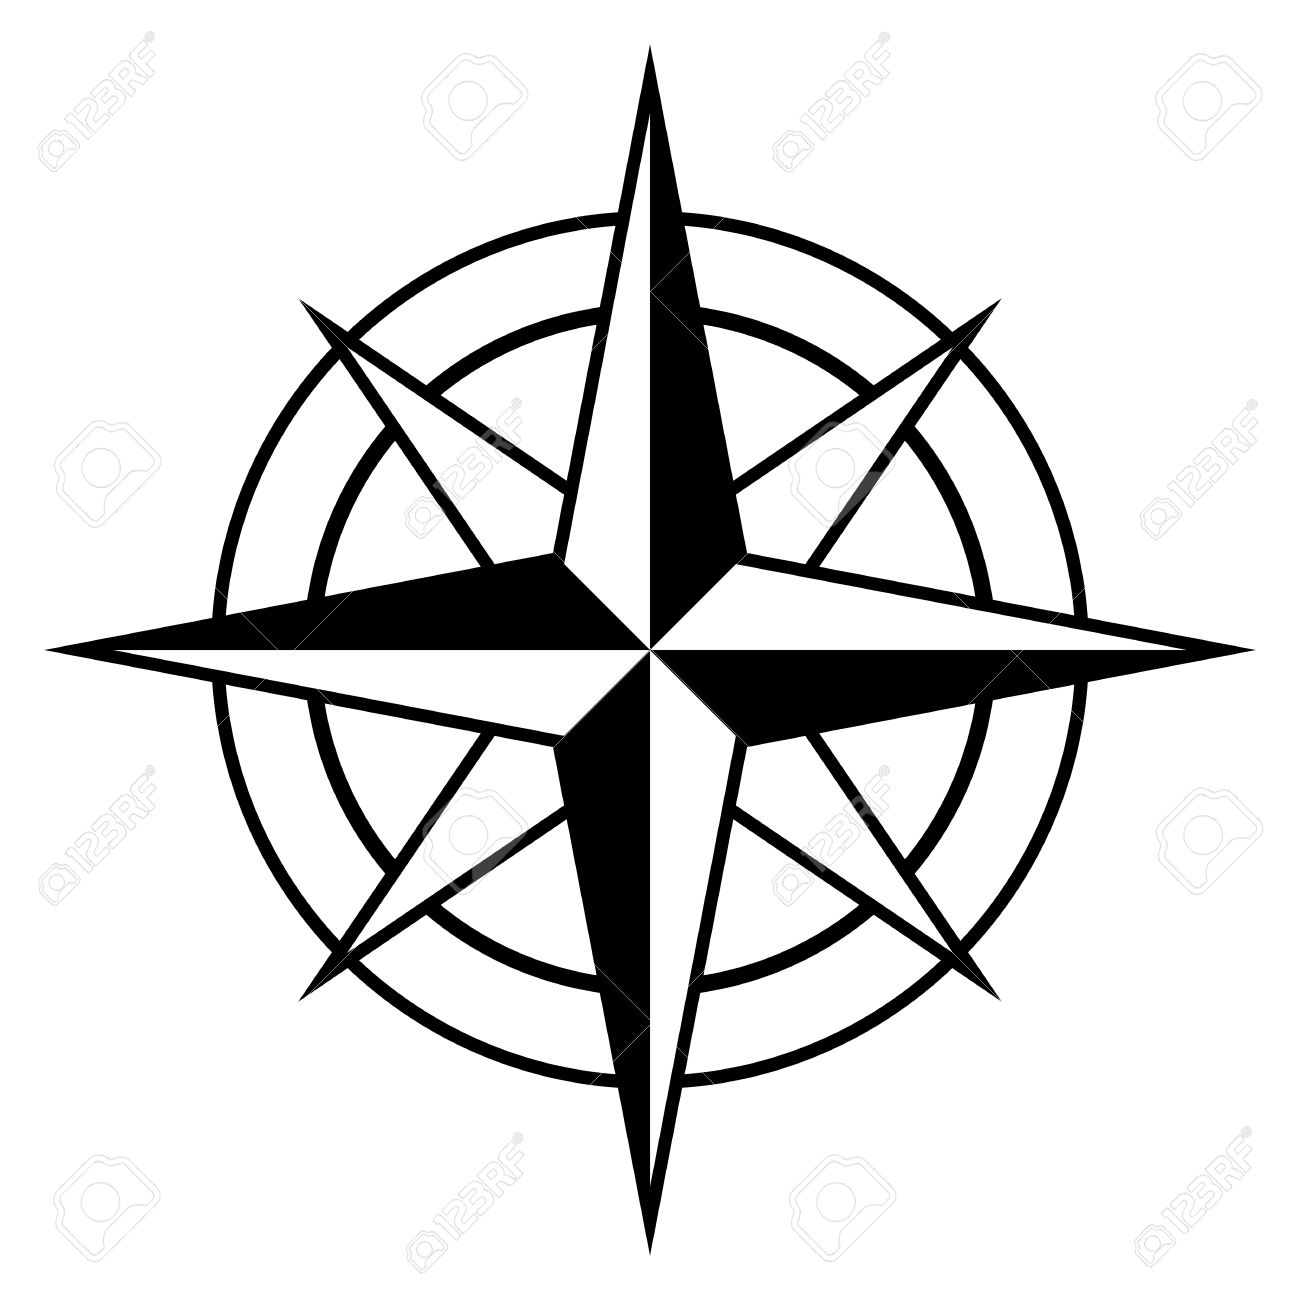 Images Compass Rose Clipart.